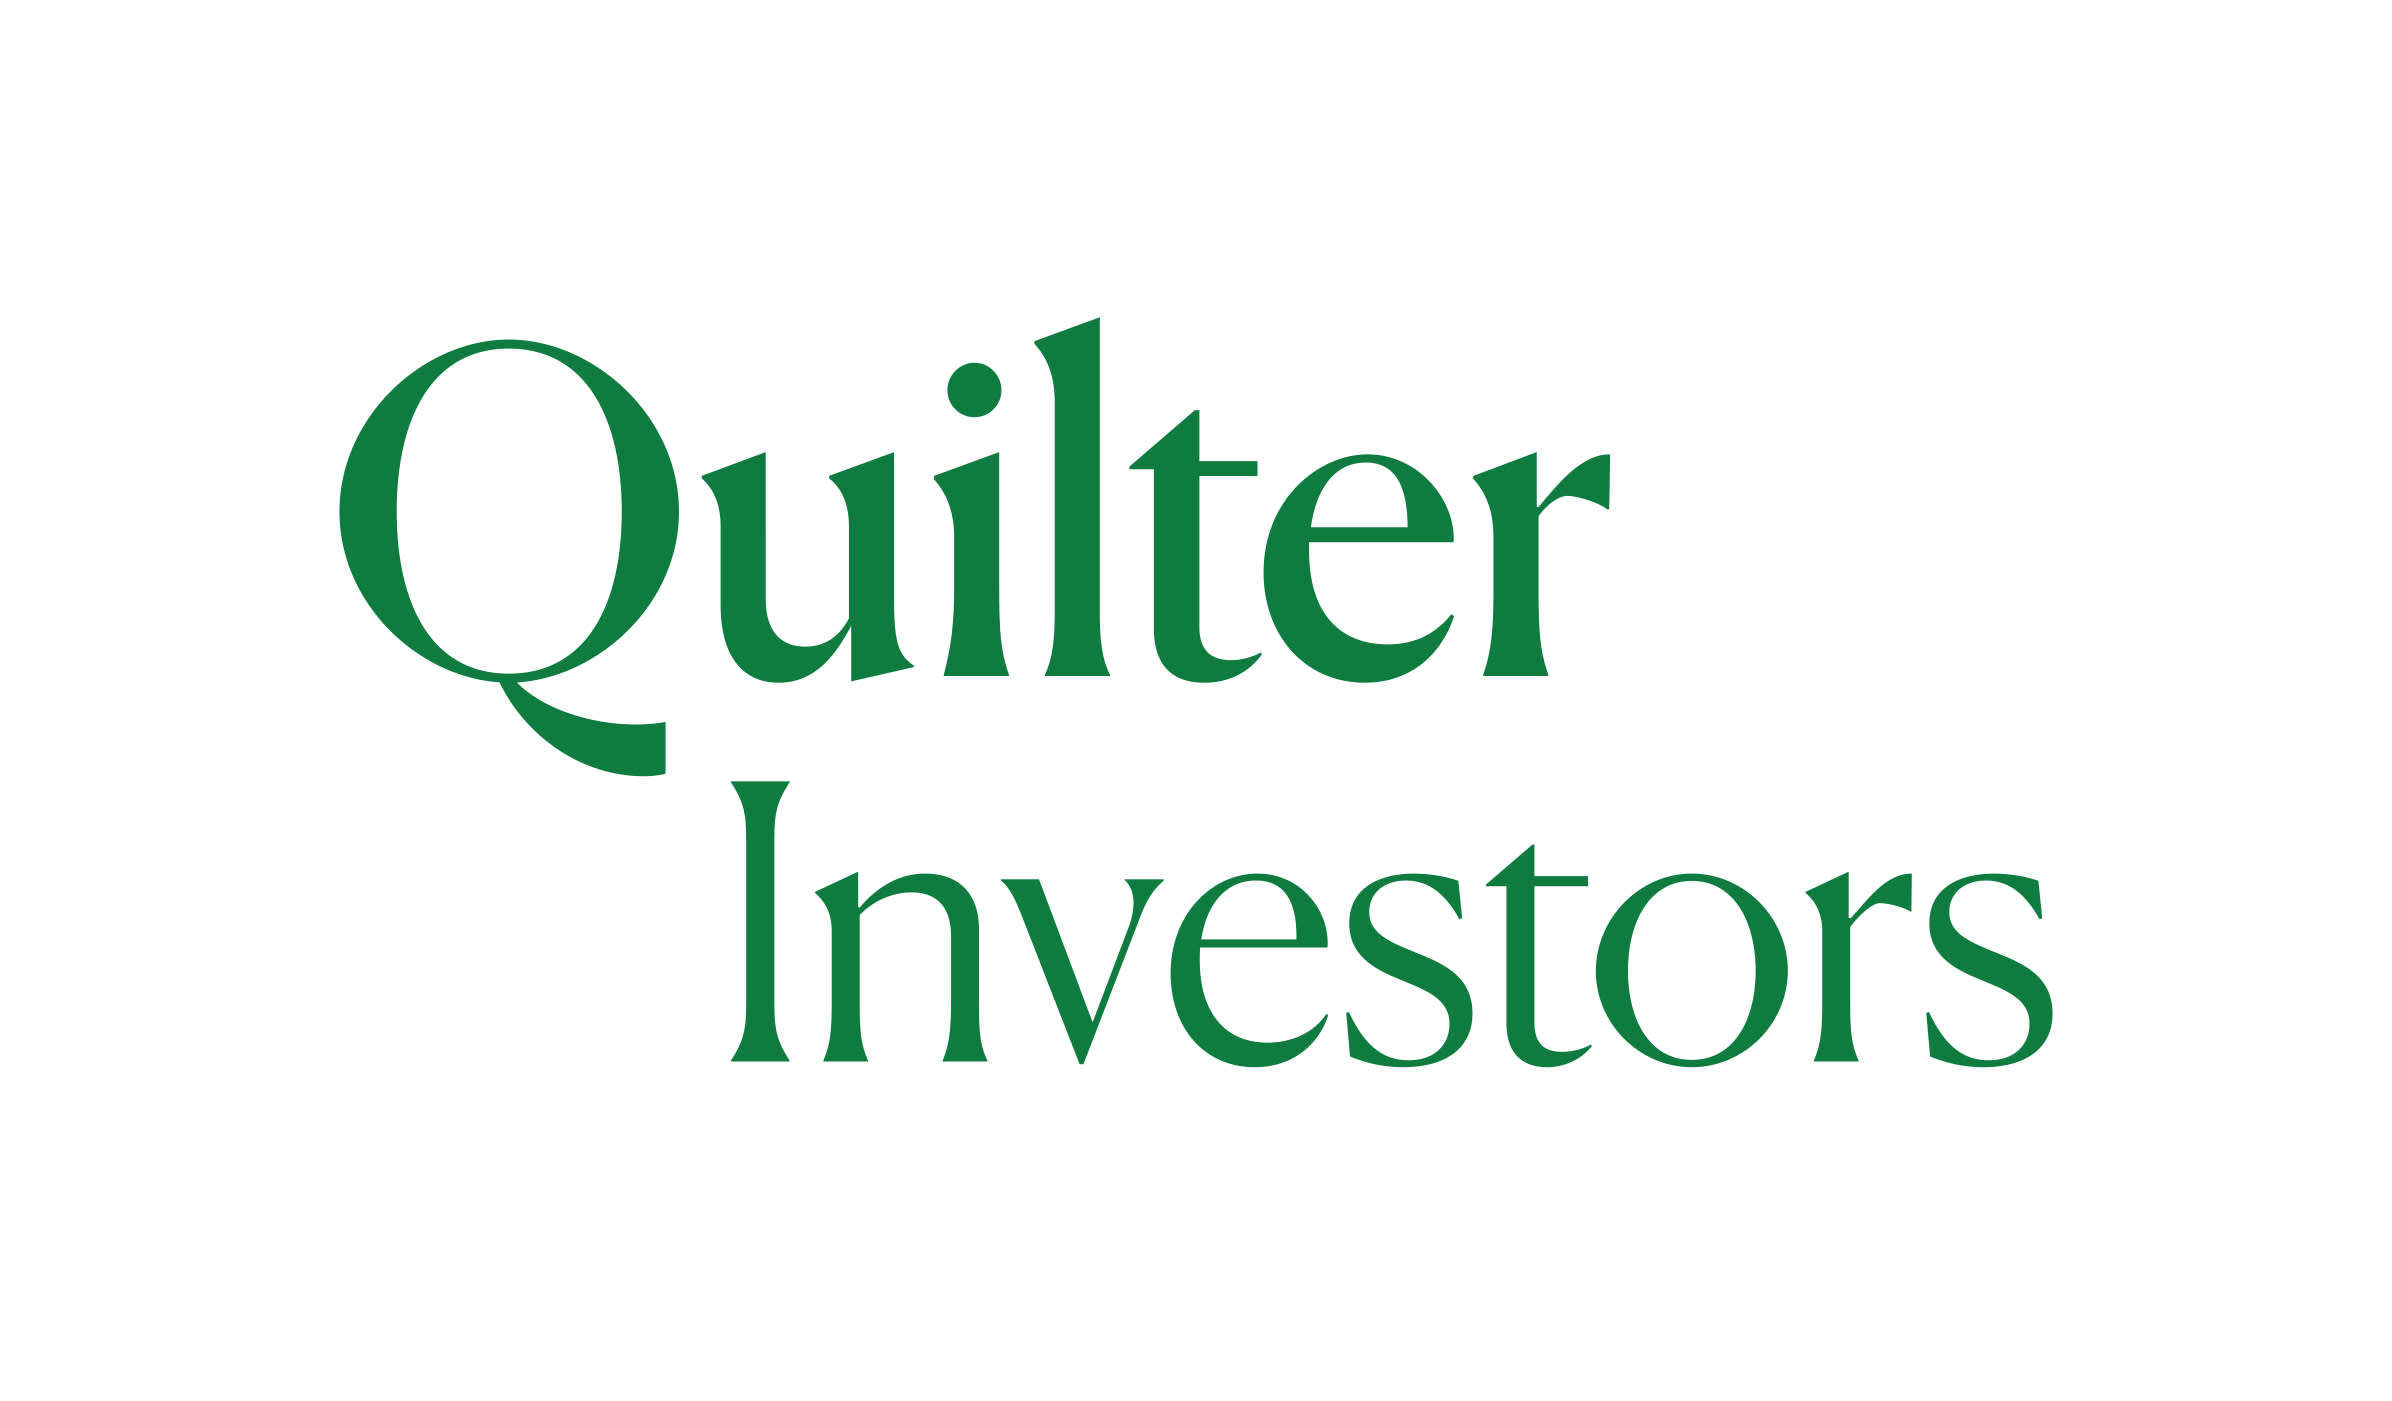 Quilter Investors launches multi-asset income funds